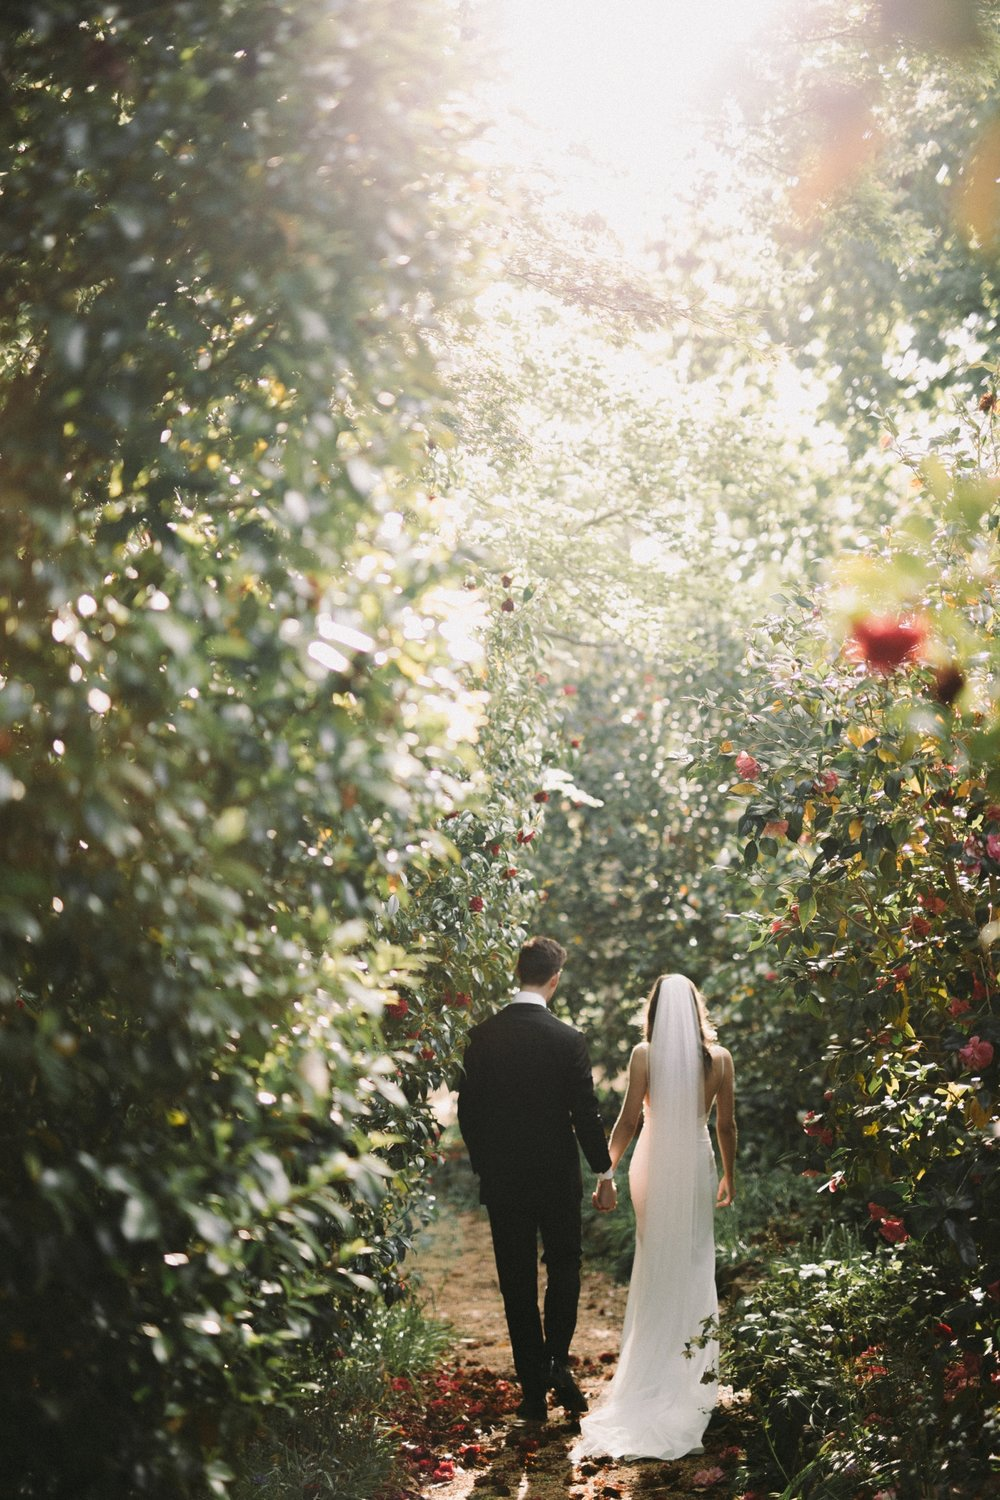 Katie and Ben - Natural Wedding Photography in Adelaide - Beautiful, Candid Wedding Photographer - Adelaide Hills Wedding - Katherine Schultz - www.katherineschultzphotography.com_0054.jpg